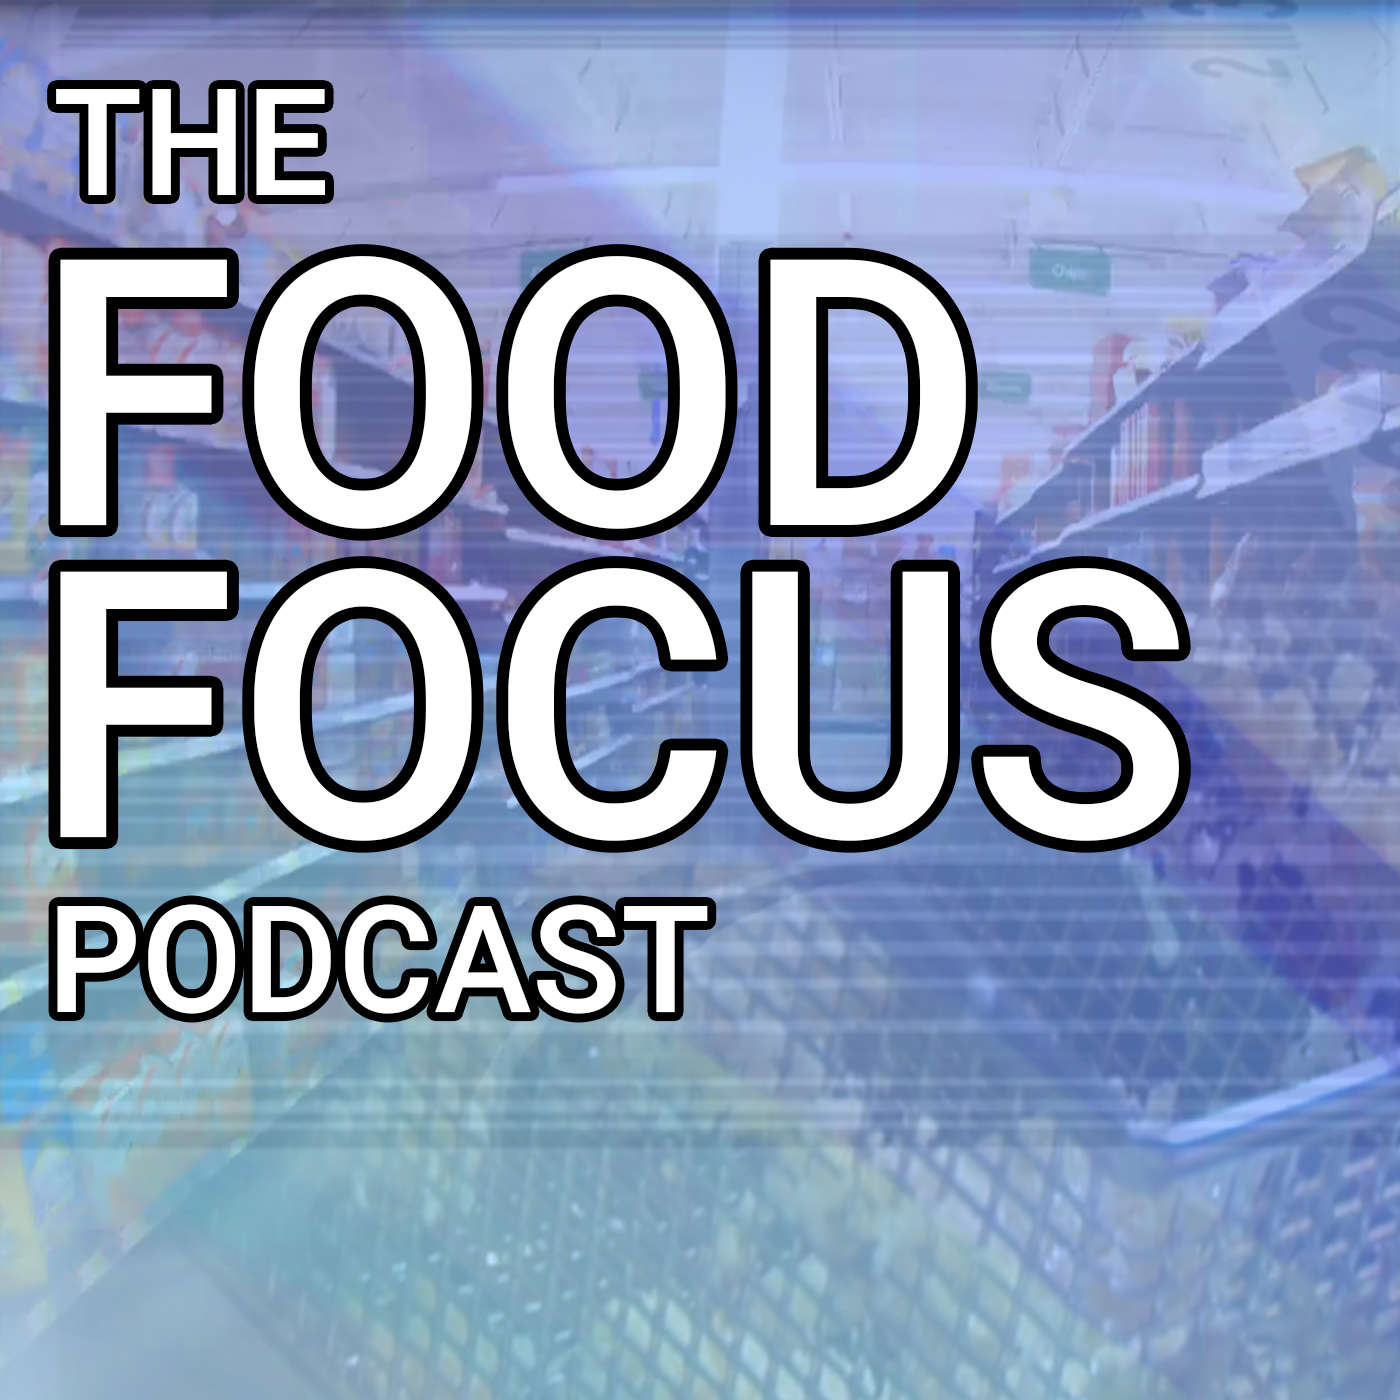 The Food Focus Podcast